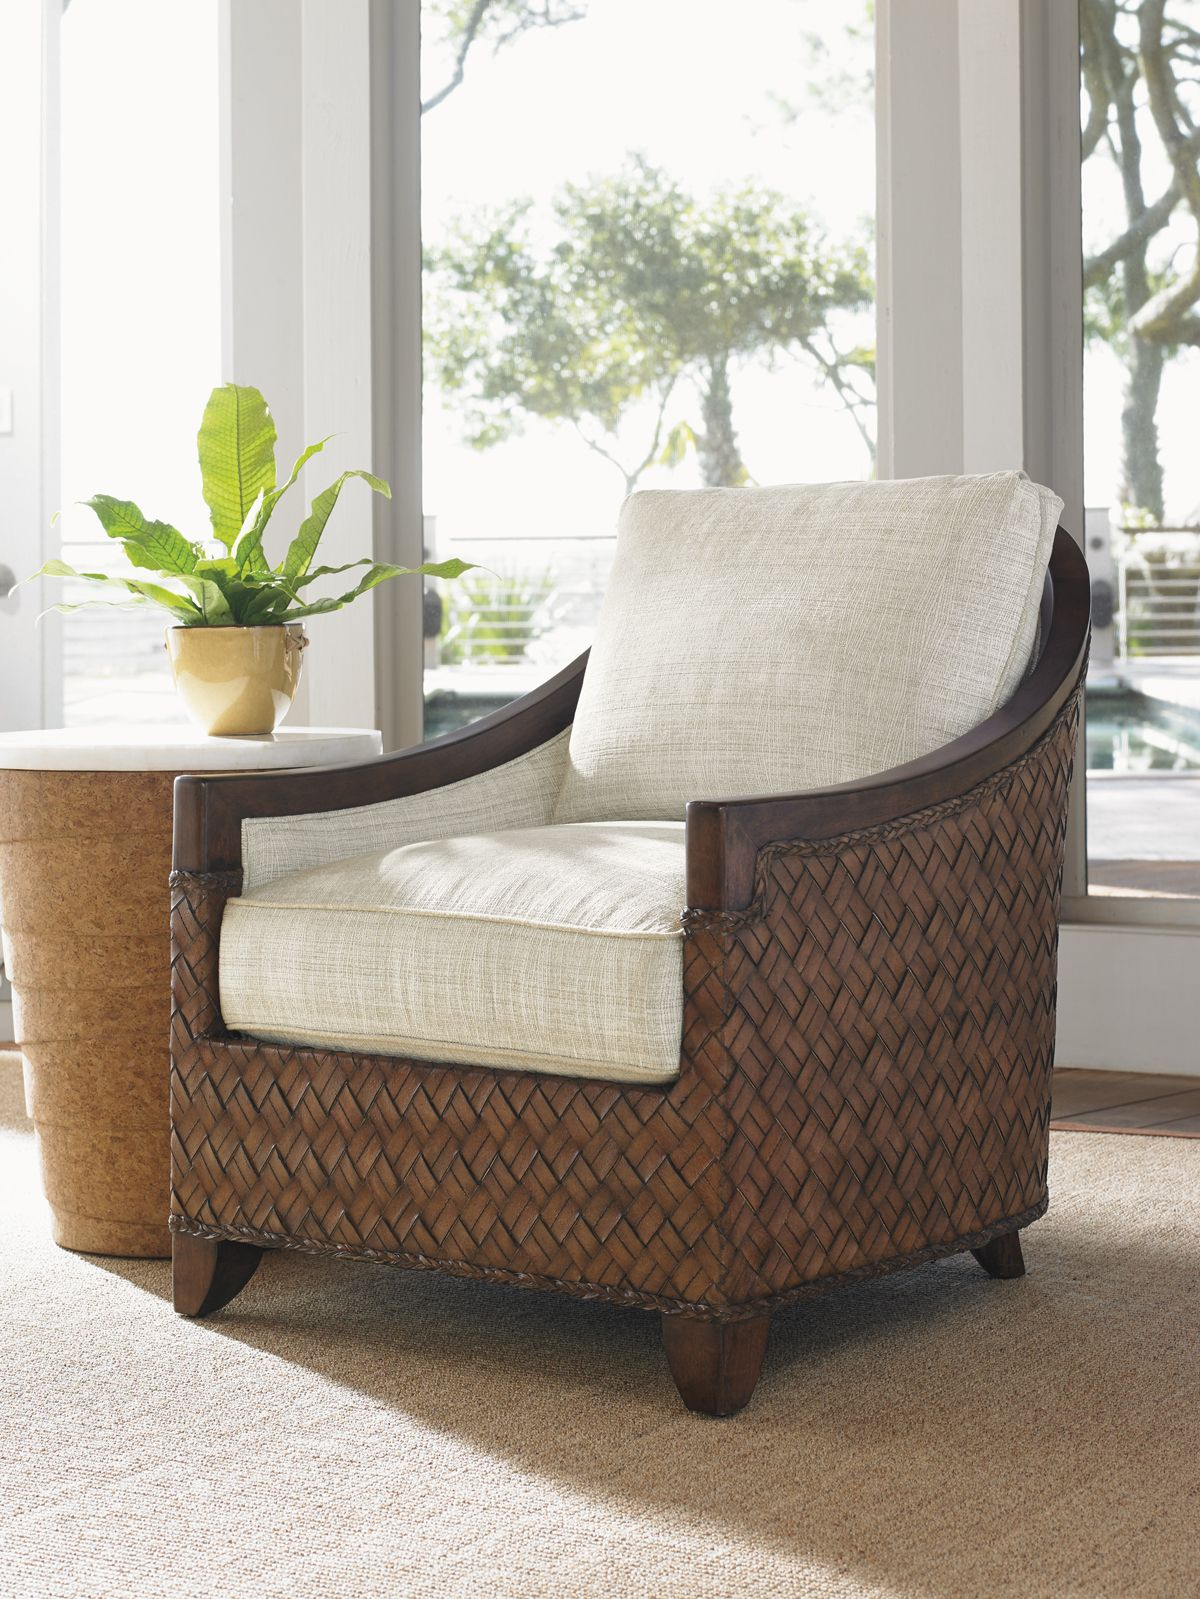 Coastal Accent Chair from Tommy Bahama Home.